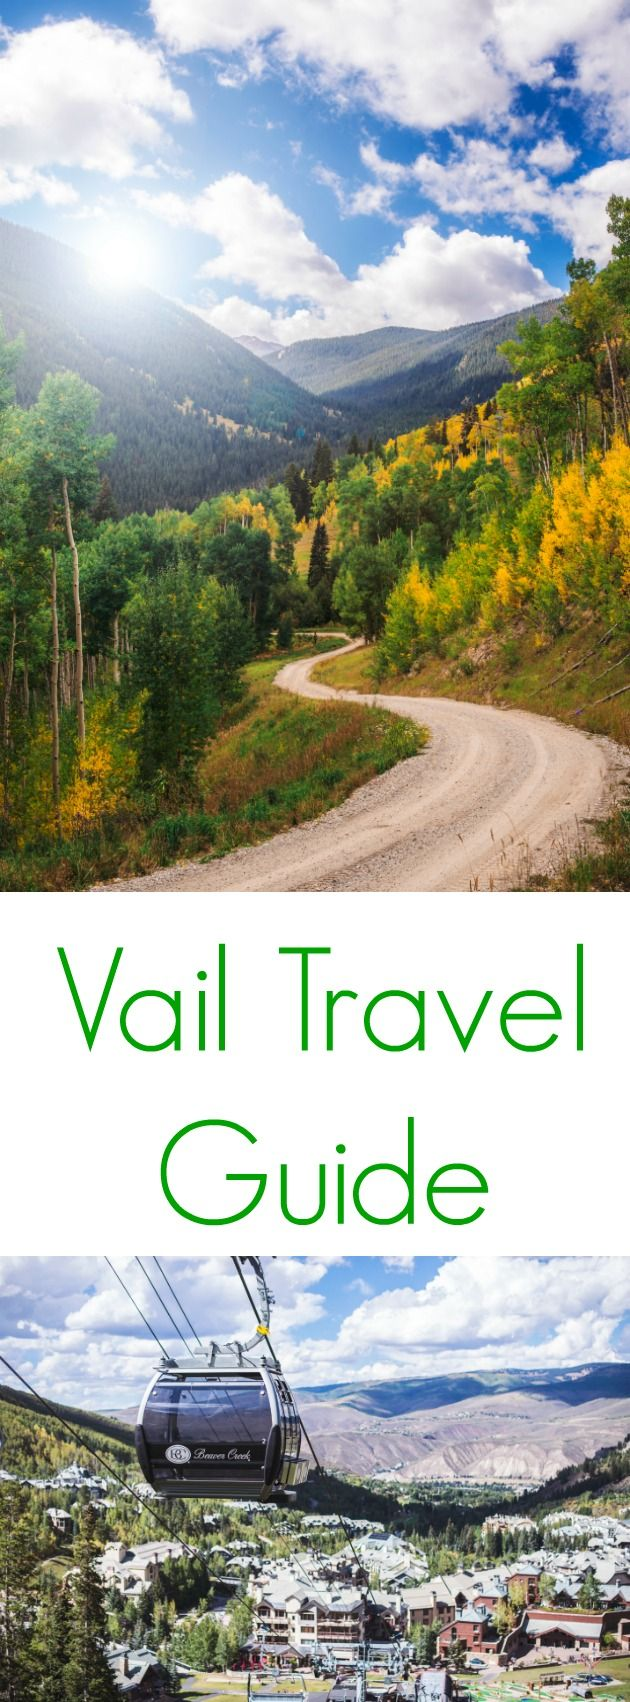 Vail Travel Guide- Tips & advice on how to spend your time while visiting Vail, CO.